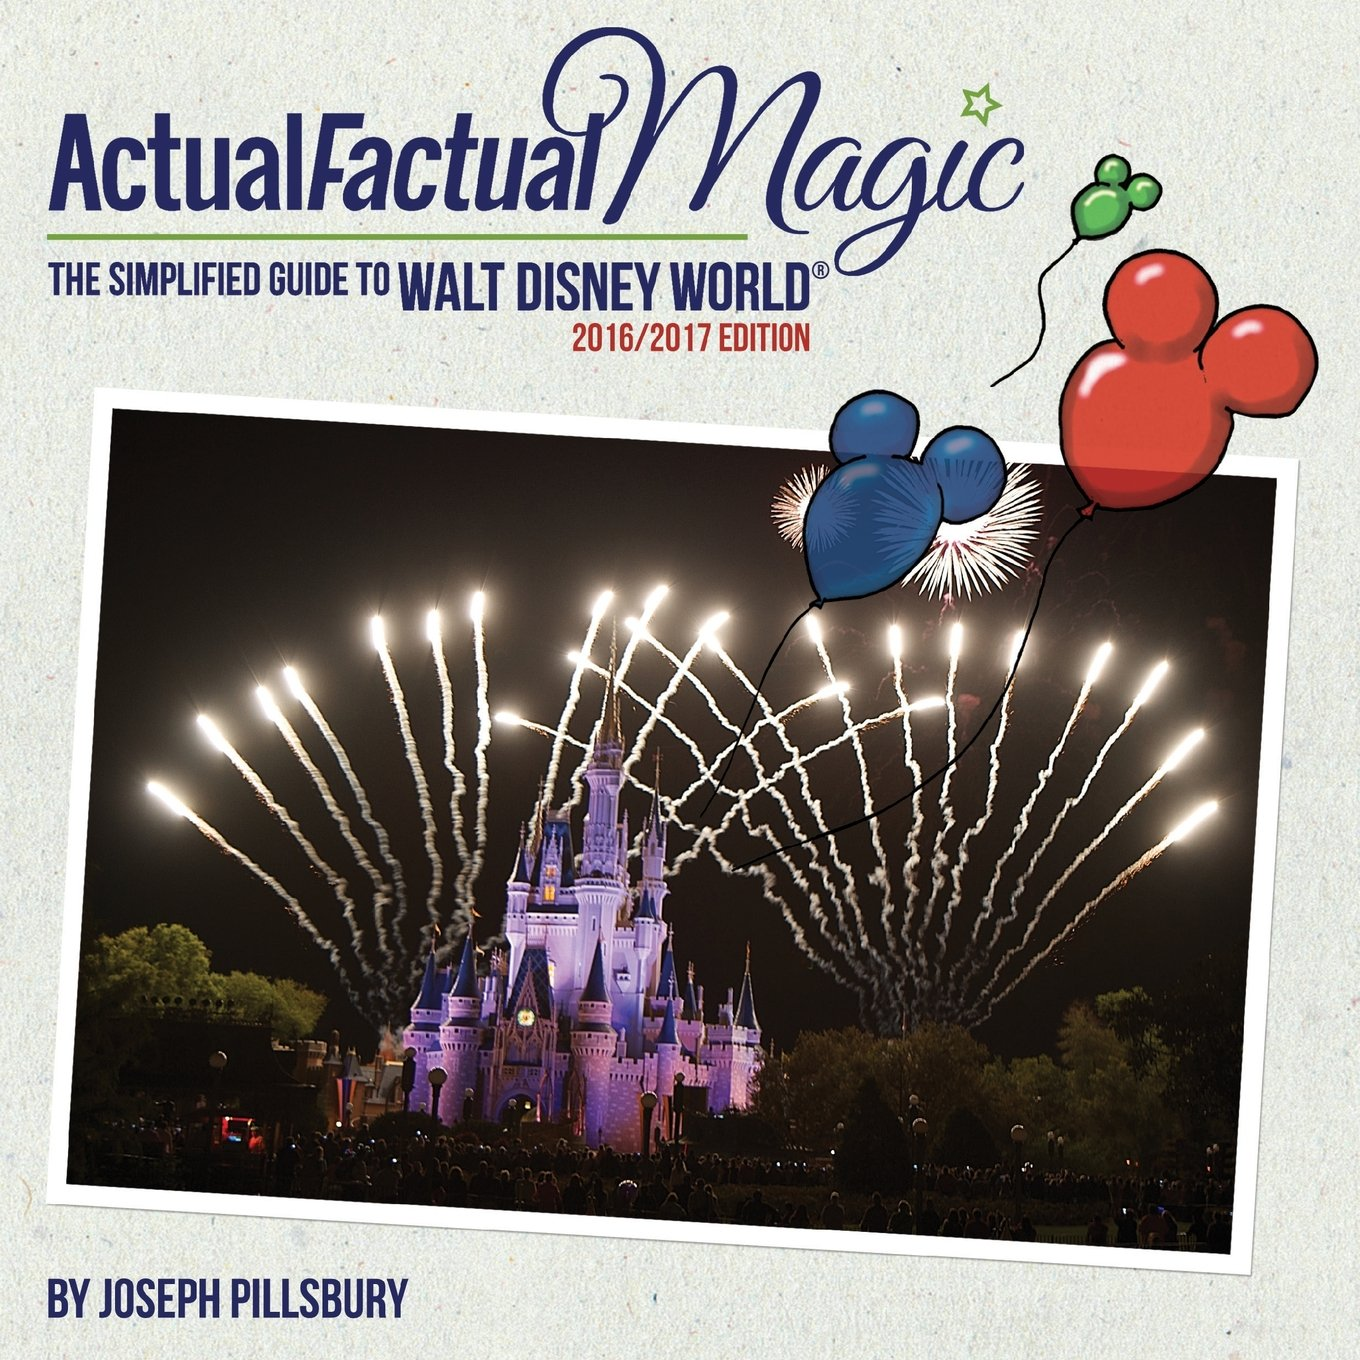 Actual Factual Magic: A Simplified Guide to Walt Disney World® pdf epub